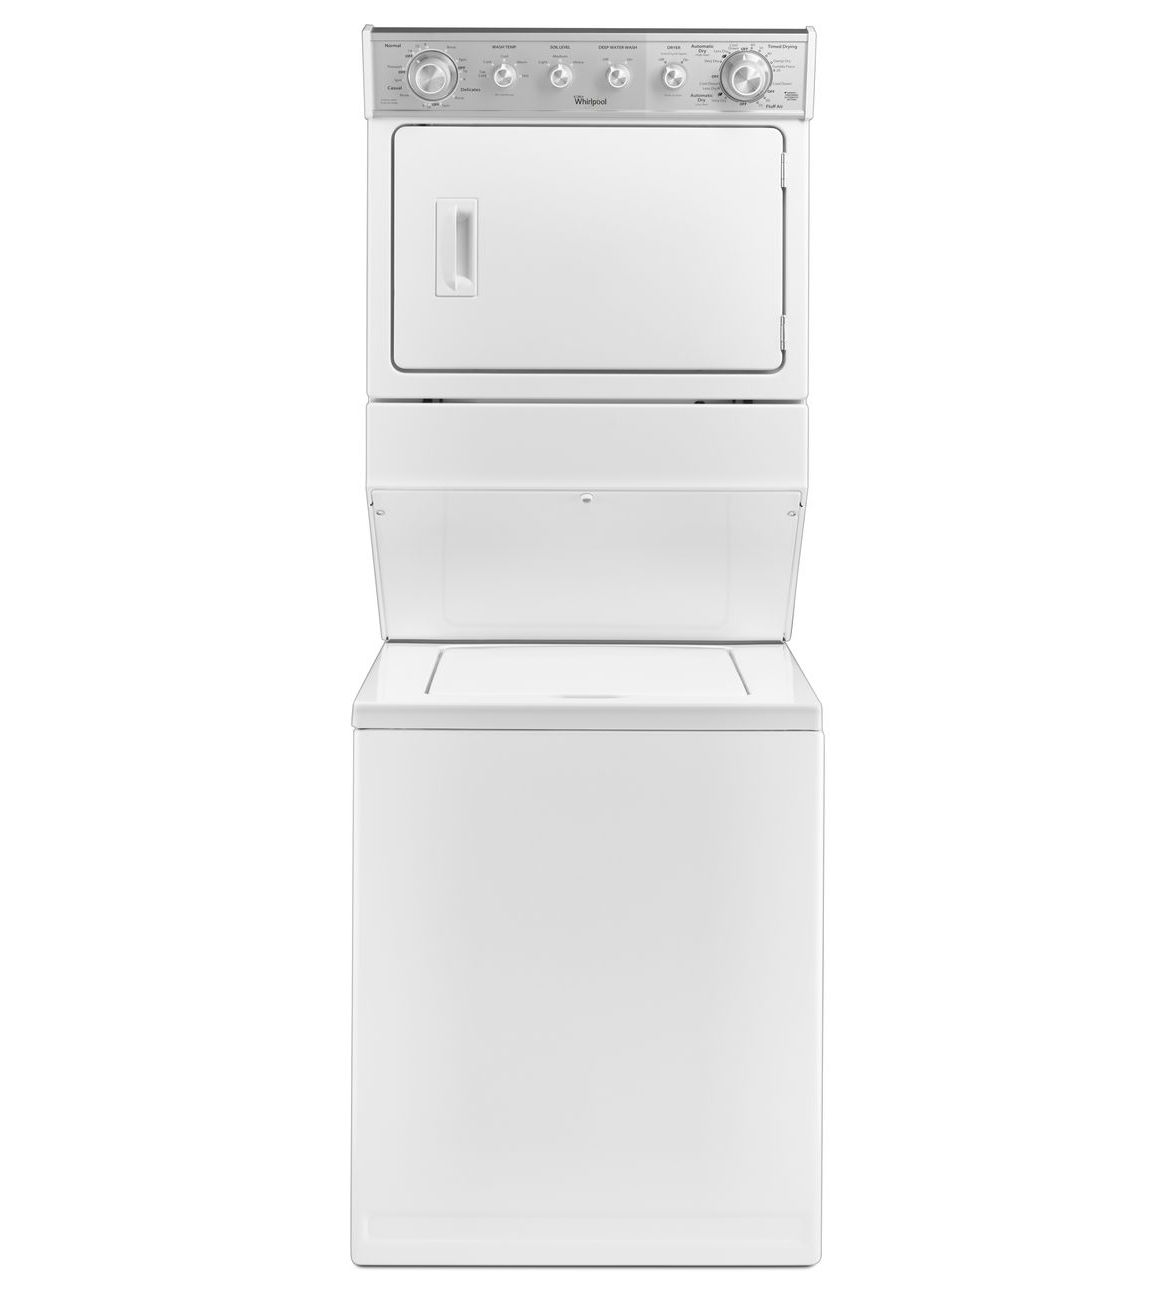 Whirlpool Thin Twin Washer Dryer Combination White